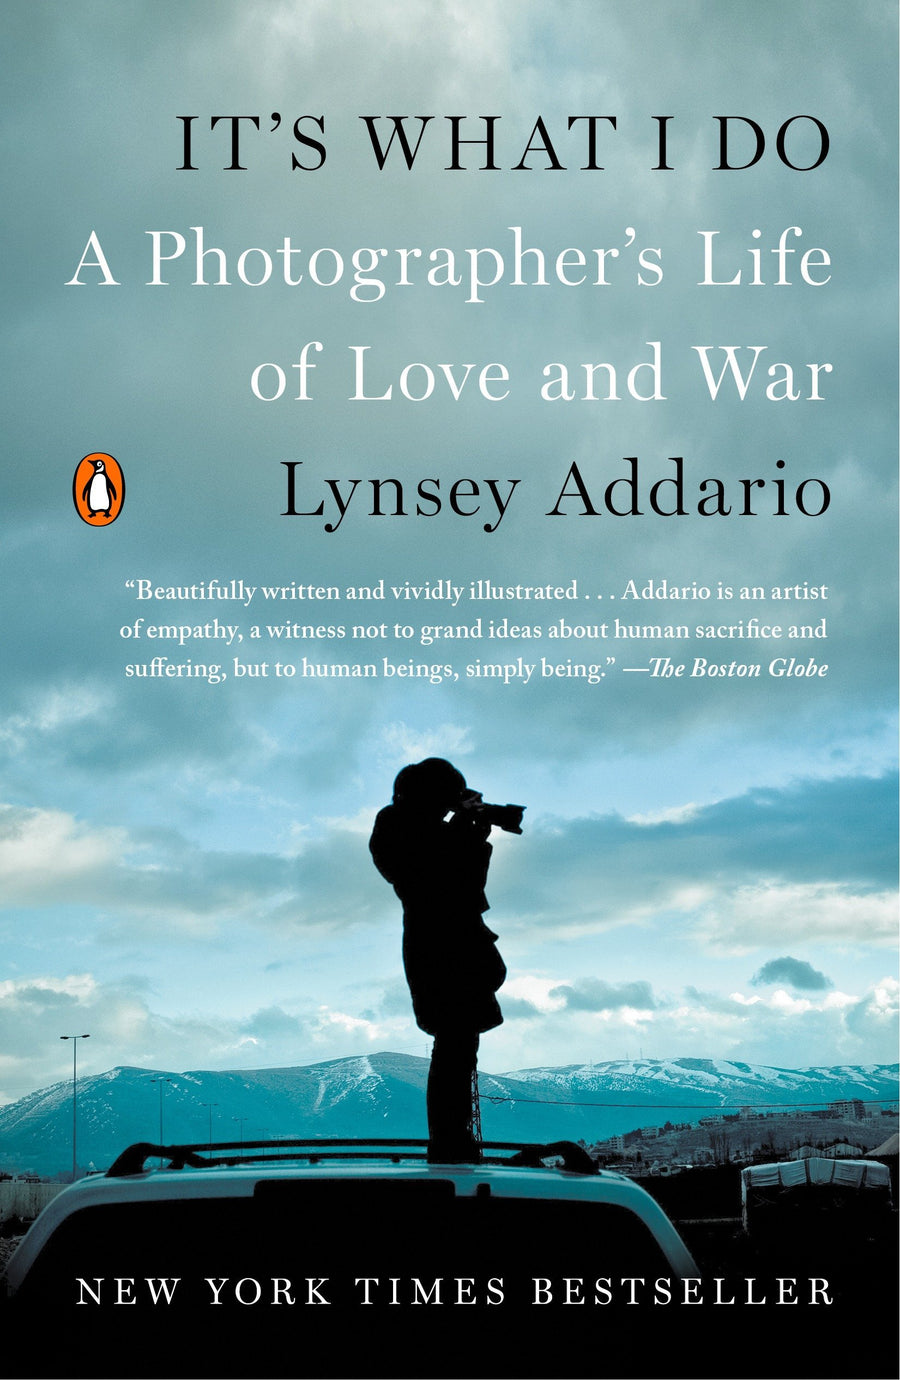 It's What I Do: A Photographer's Life of Love and War by Lynsey Addario